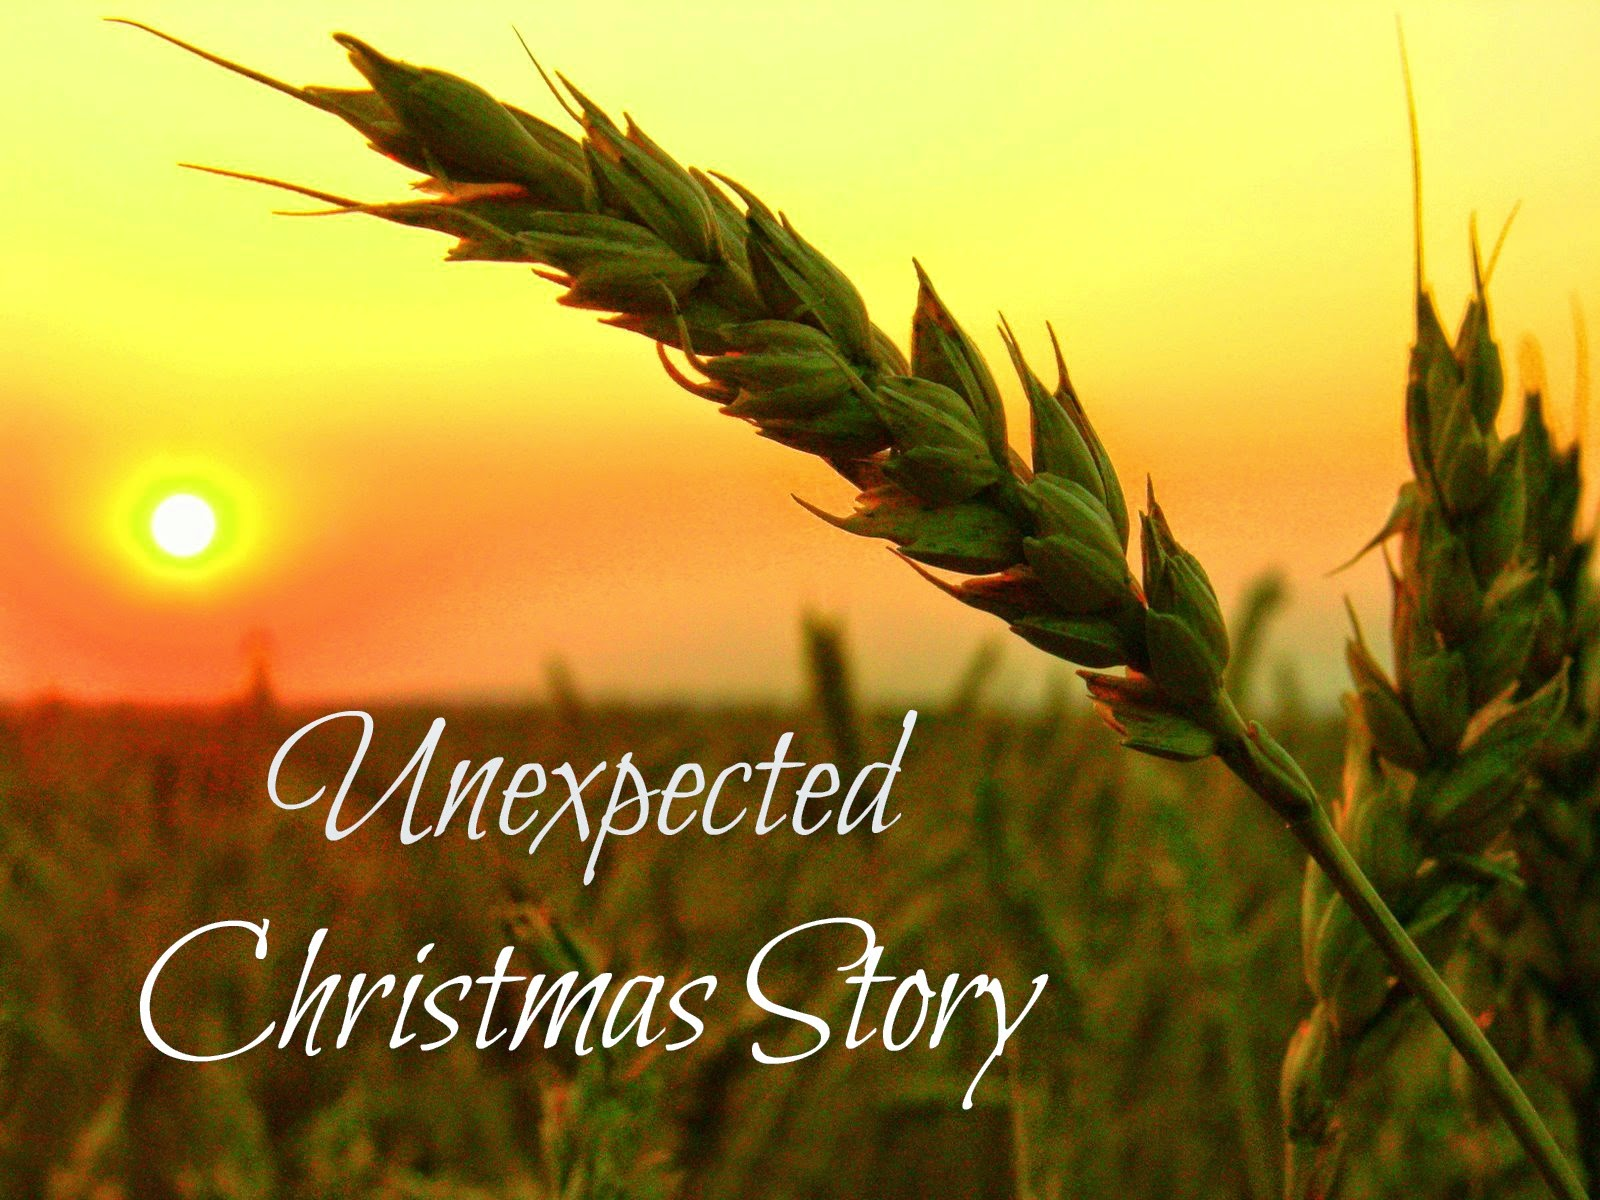 http://www.the-quiet-place.com/2014/12/an-unexpected-christmas-story.html